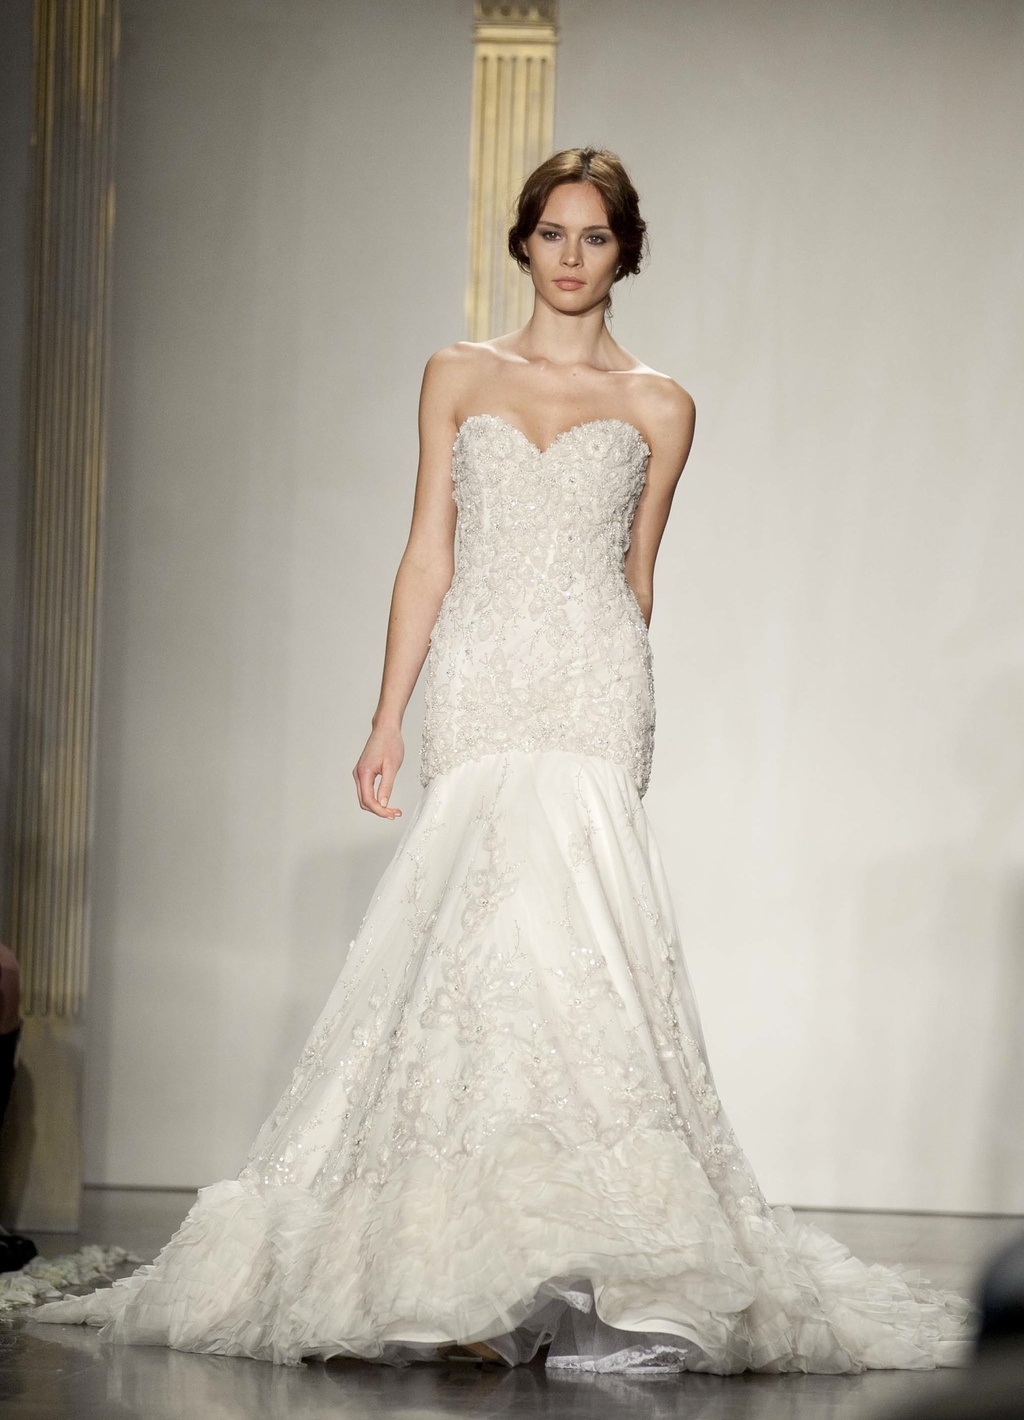 Wedding-dress-lazaro-fall-2012-bridal-gowns-romantic-lace-beaded.full